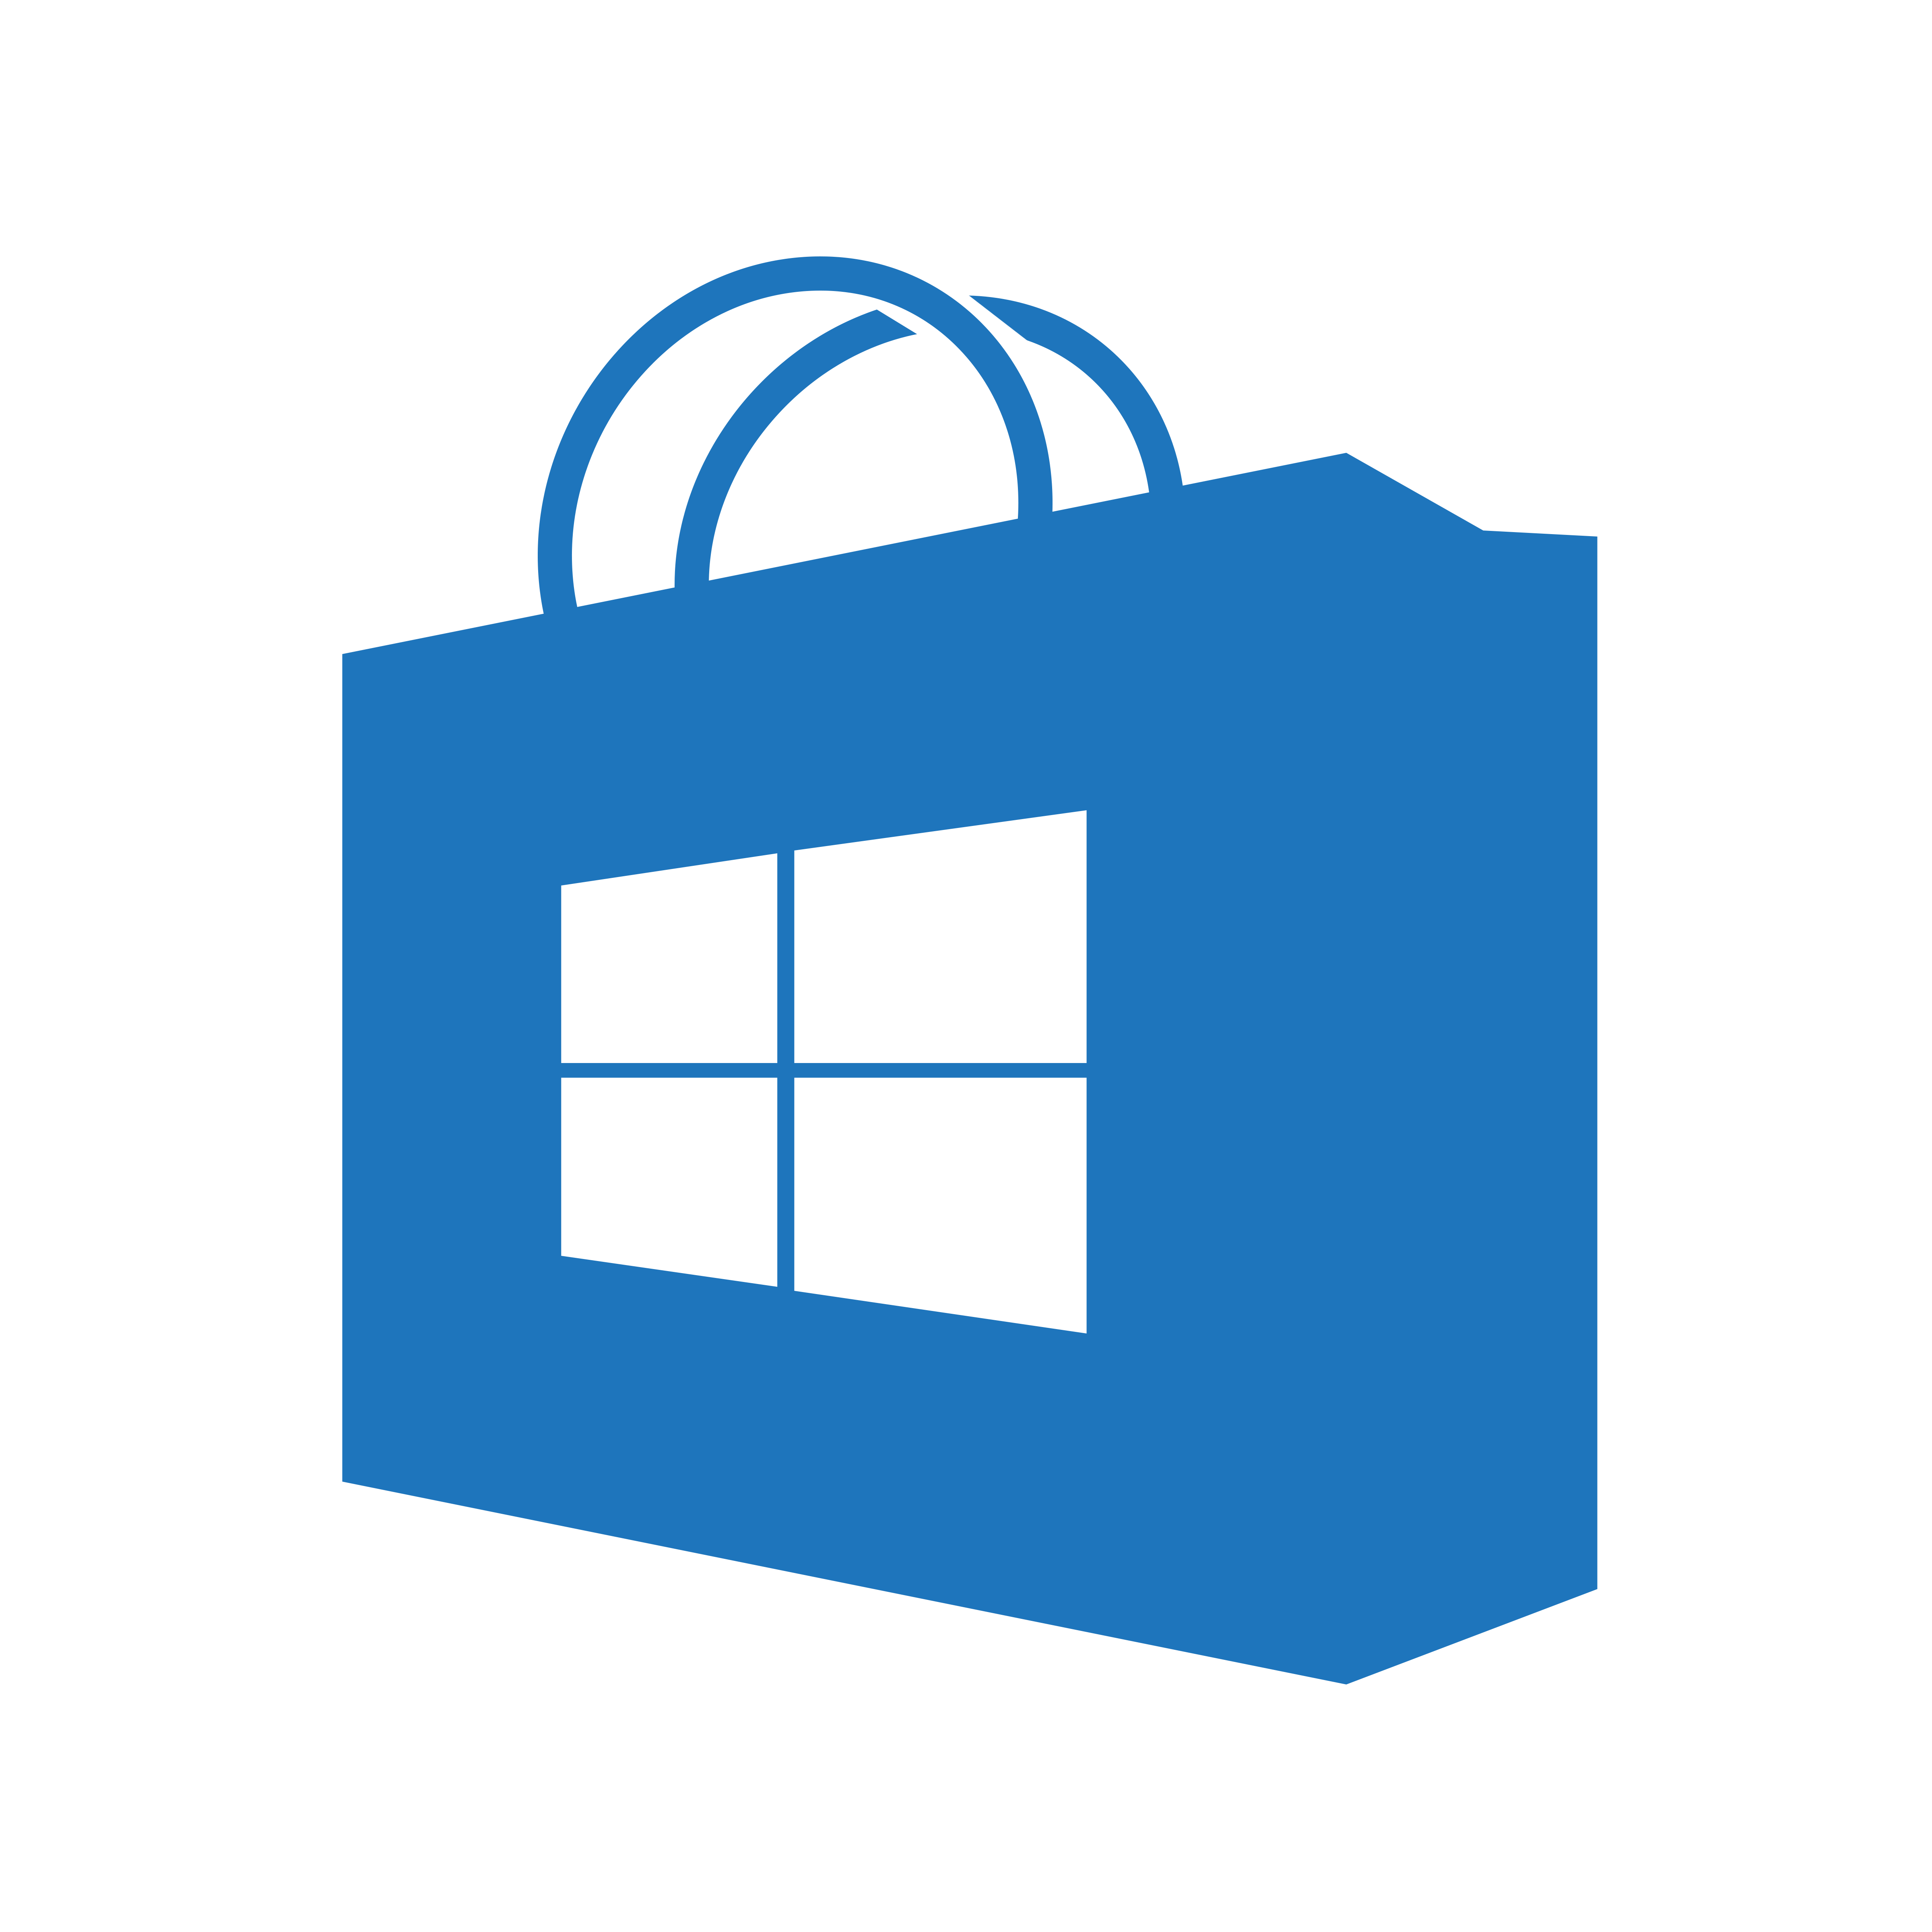 Change icon windows 10 png. Store transparent blue homemade